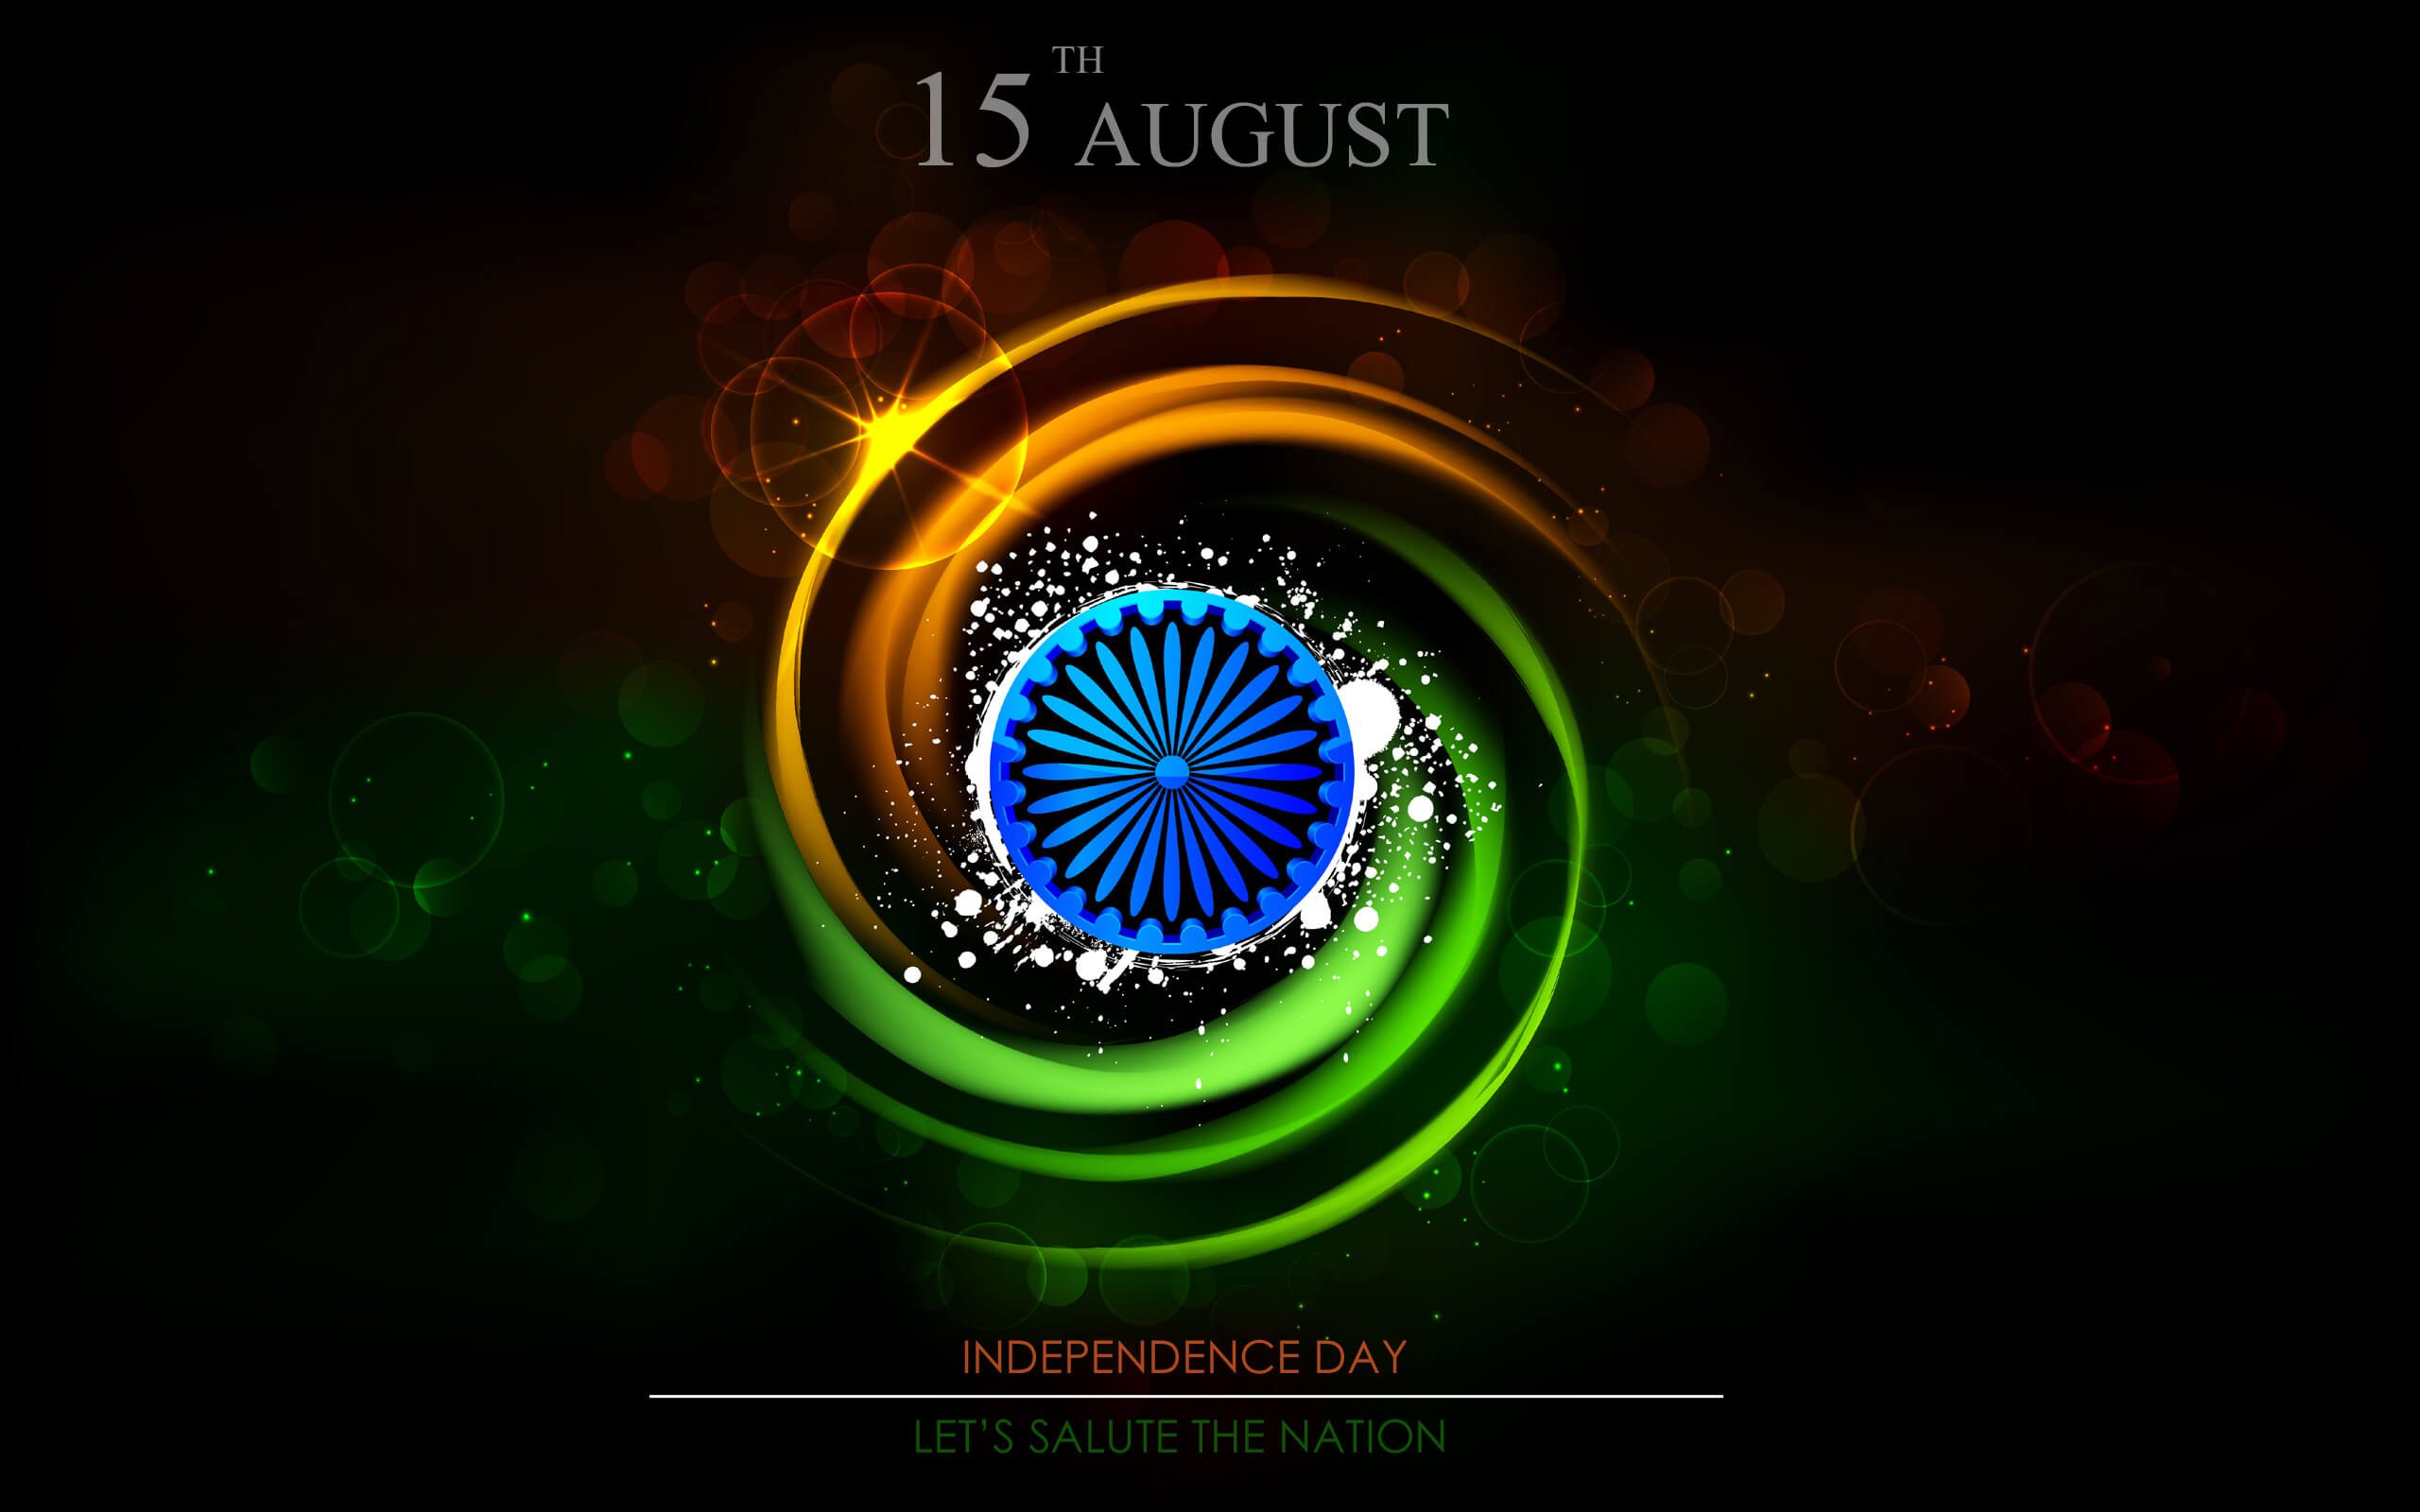 india independence day latest flag august 15th 1947 3d hd wallpaper